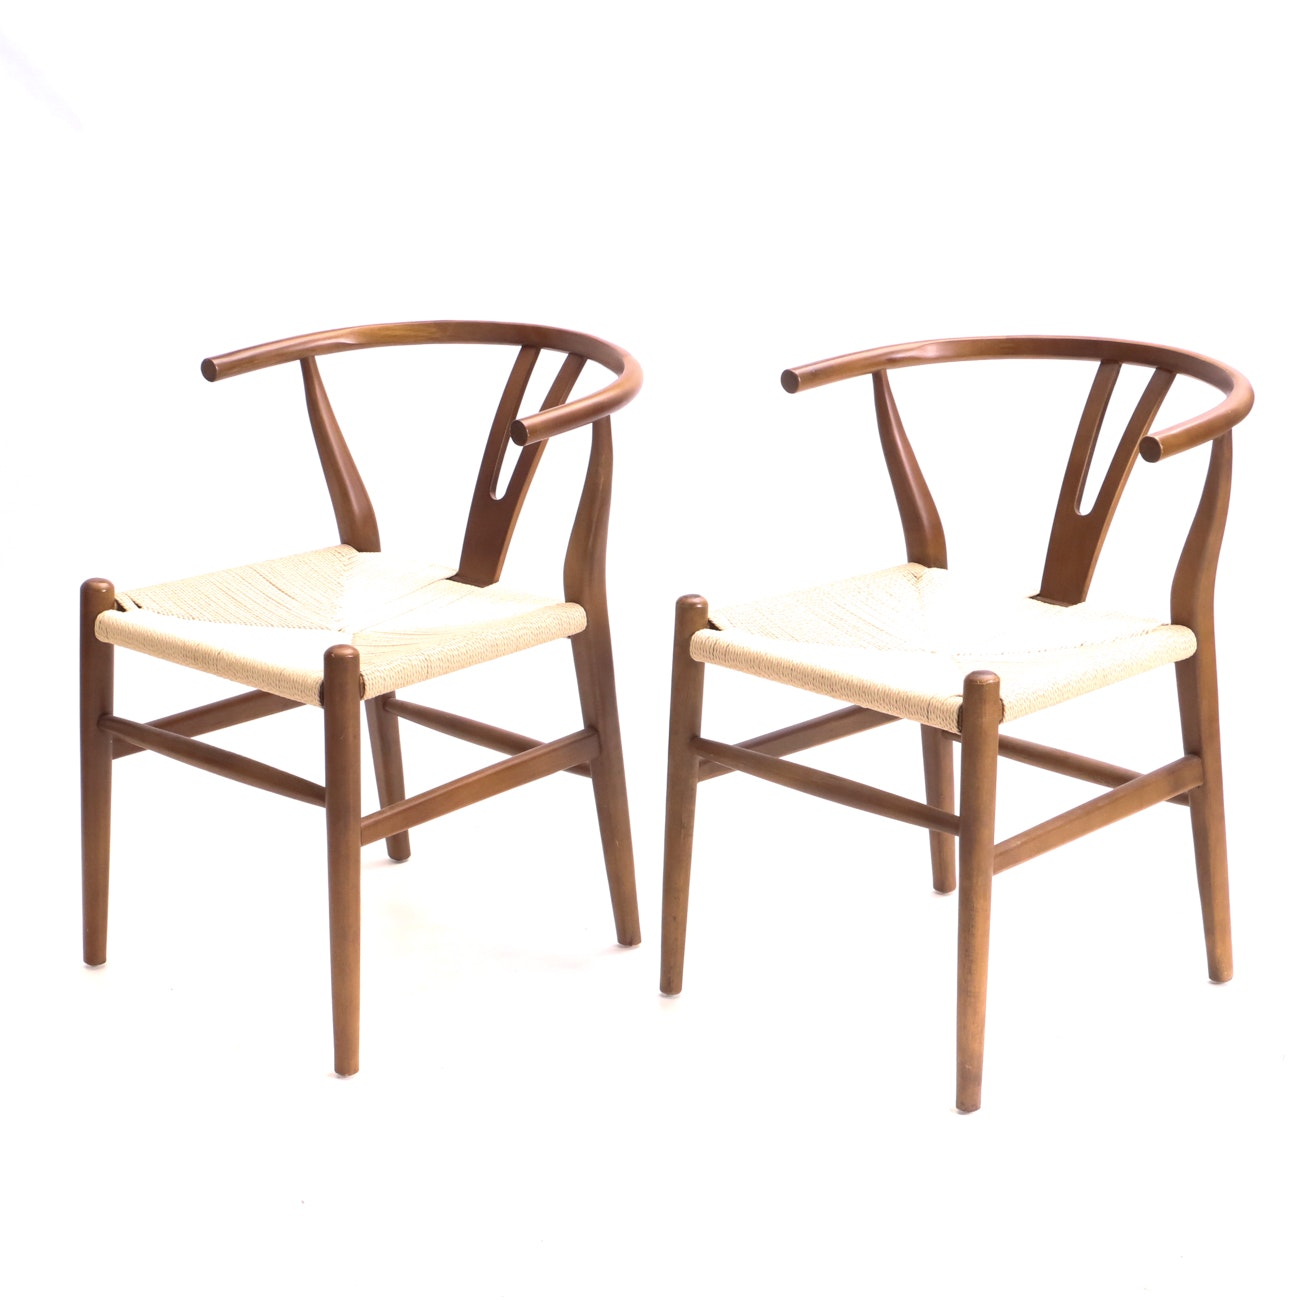 Pair Mid Century Modern Style Yoke-Back Chairs